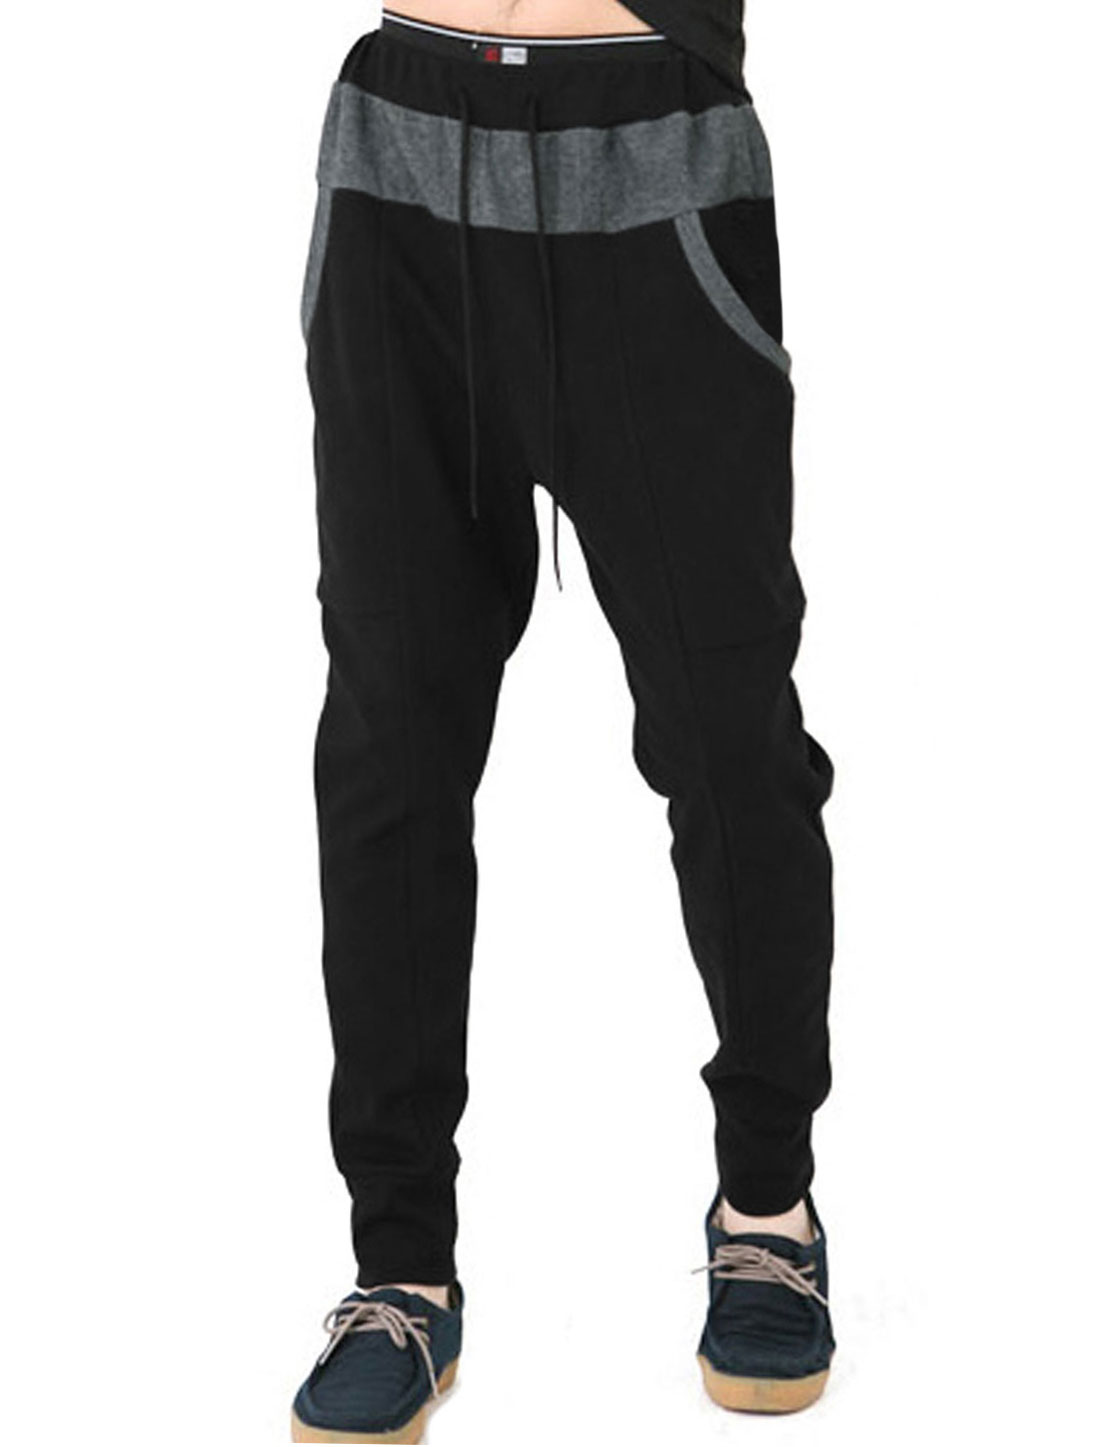 Men Drawstring Big Side Pockets Contrast Color Leisure Pants Black W30